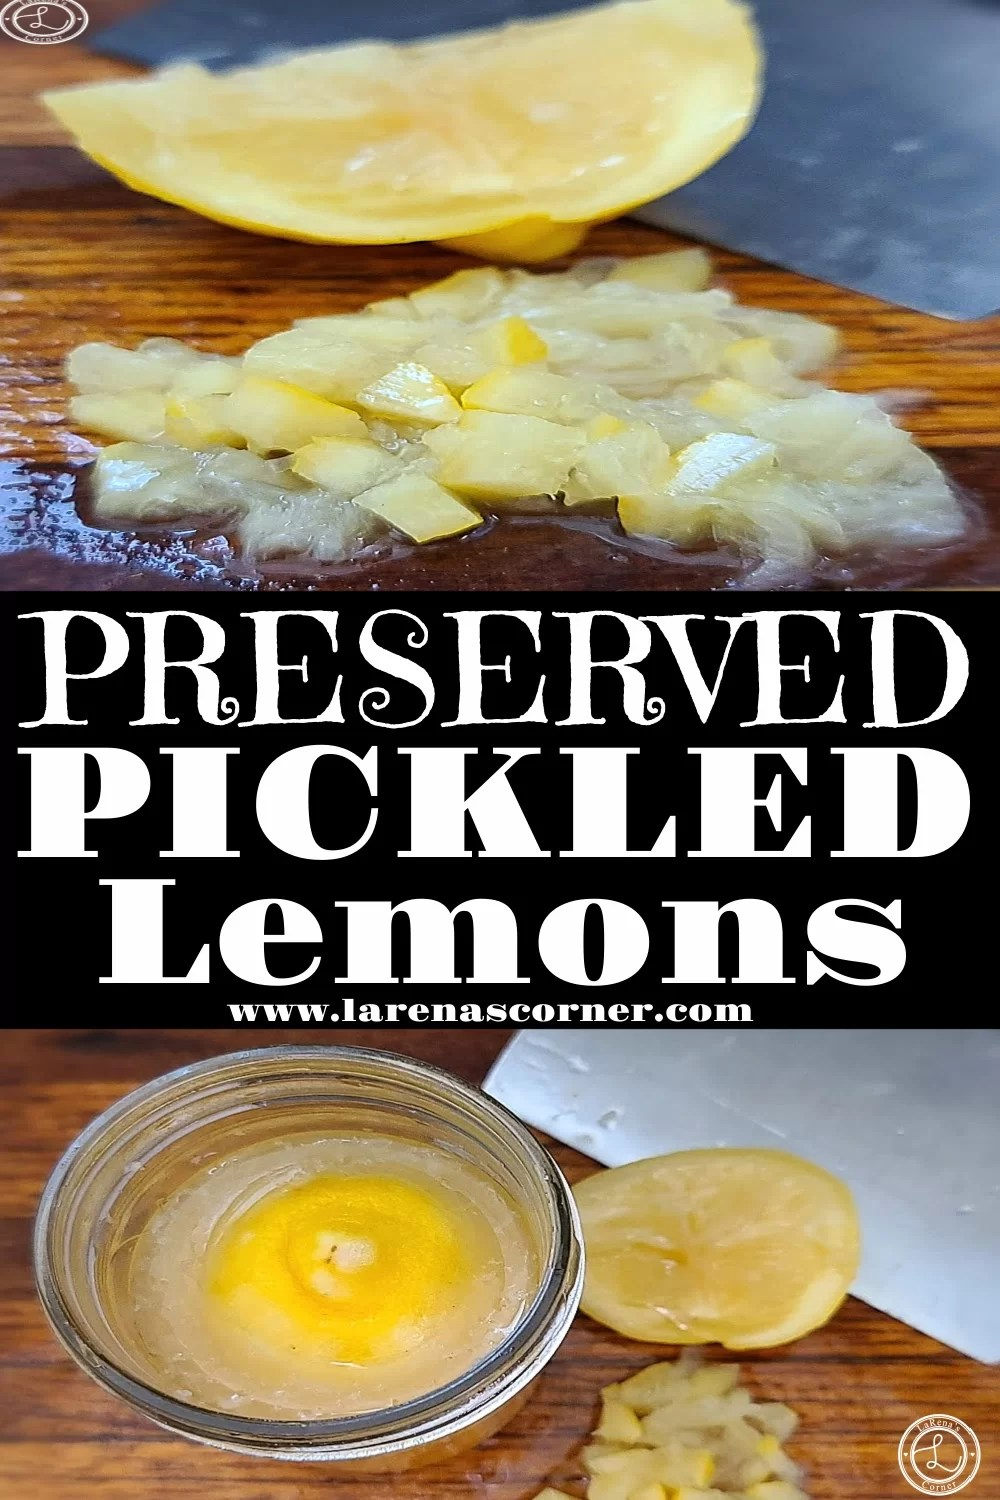 Two Pictures of pickled lemons.